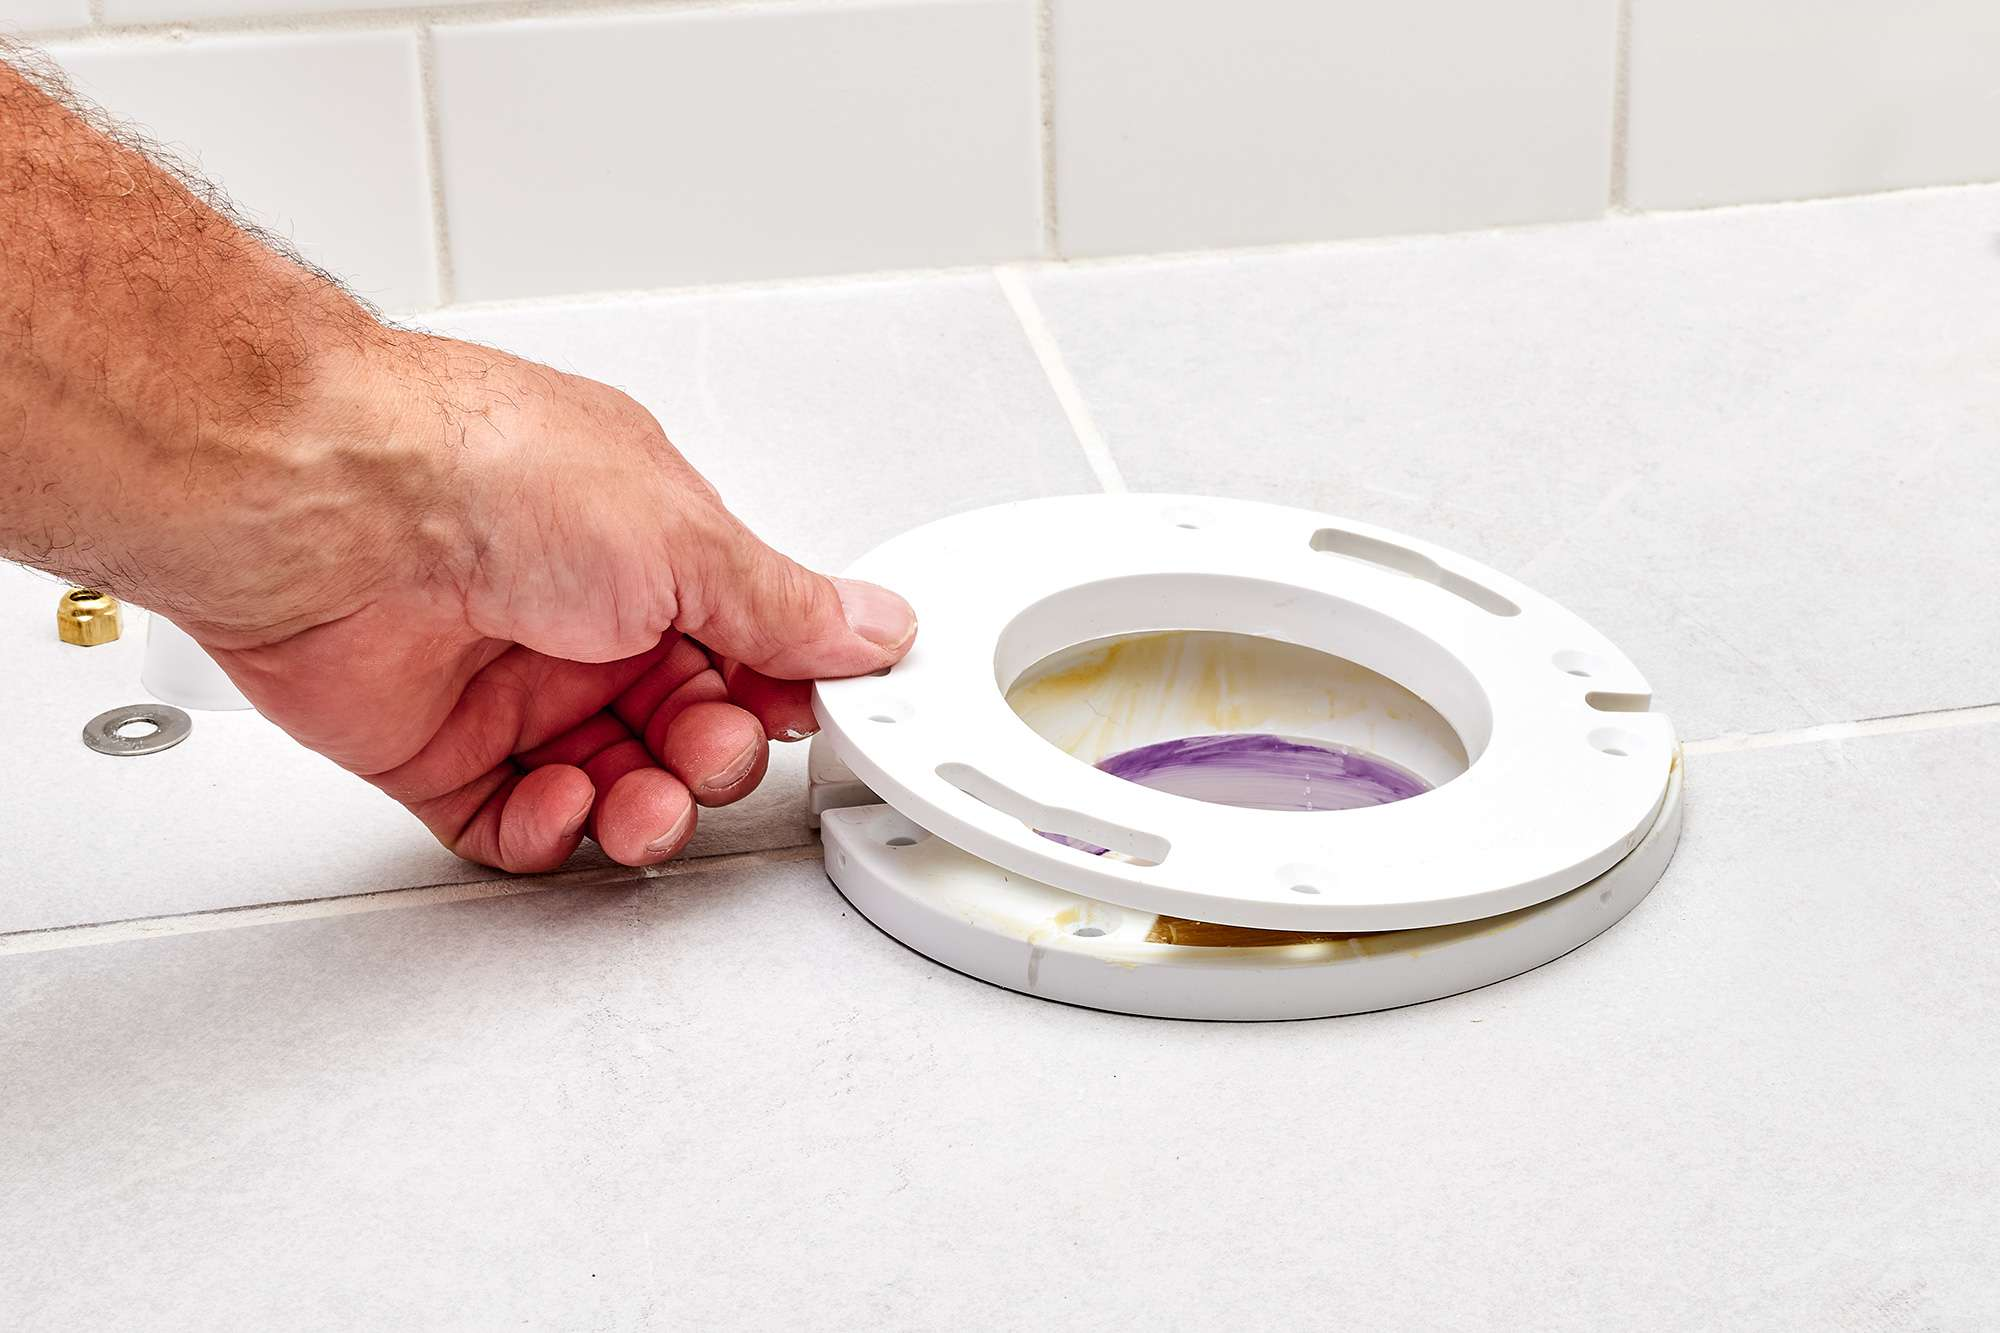 White flange extender tested and flushed with floor surface